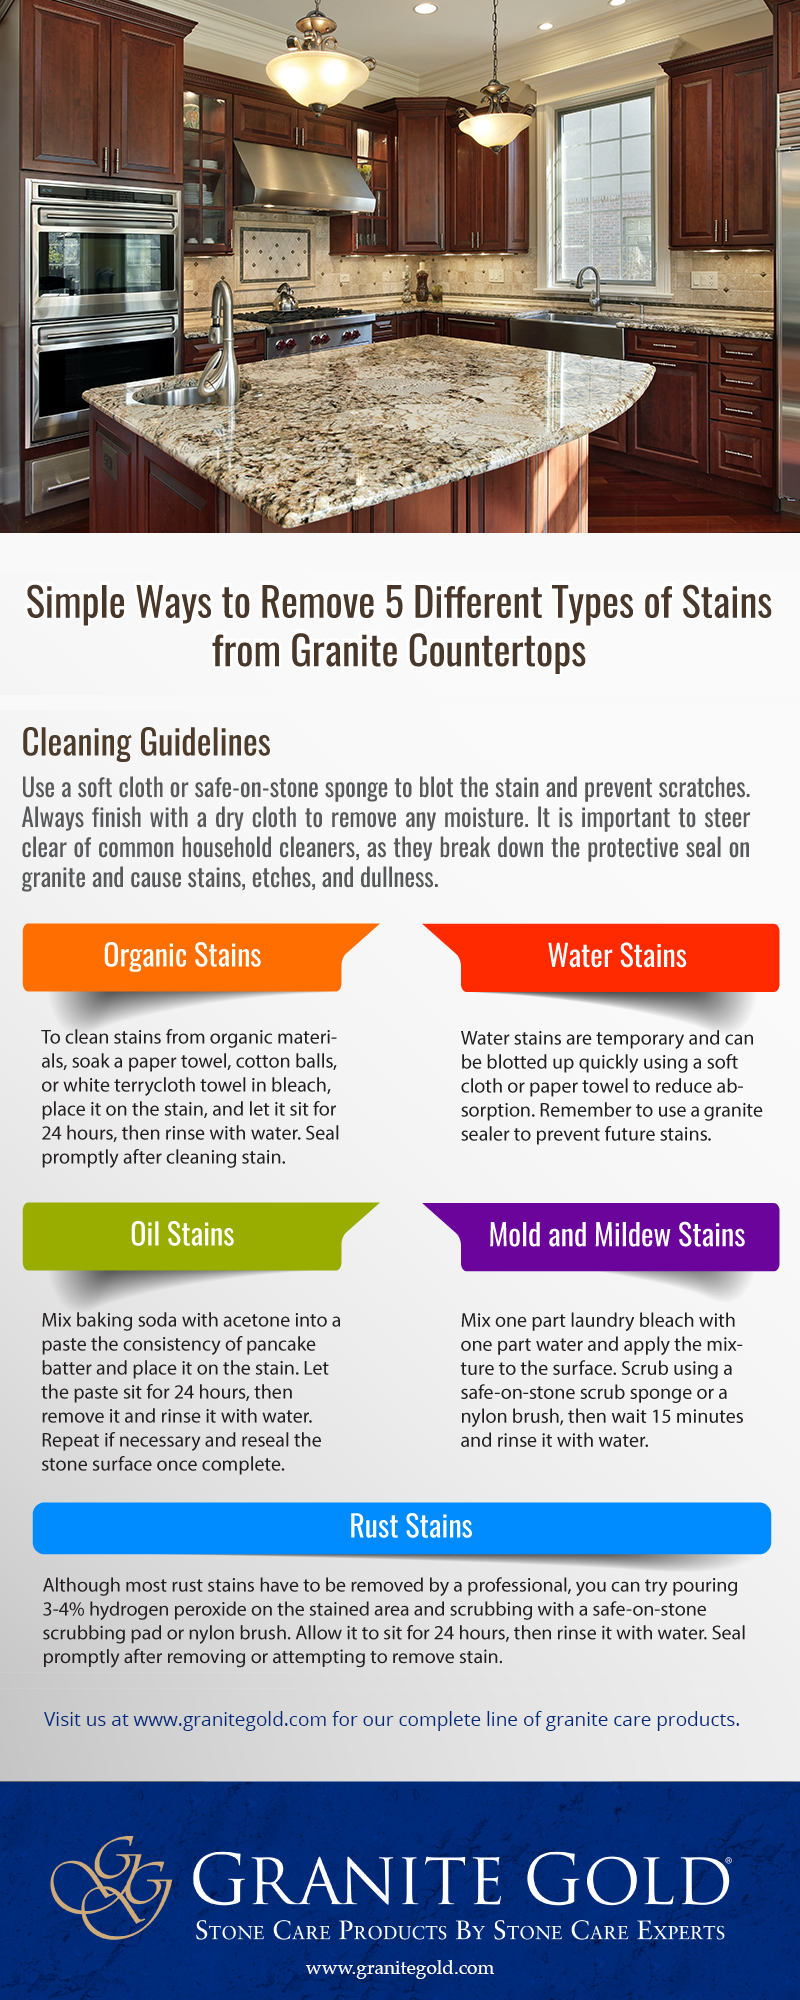 Without Proper Maintenance Granite Countertops Are Susceptible To